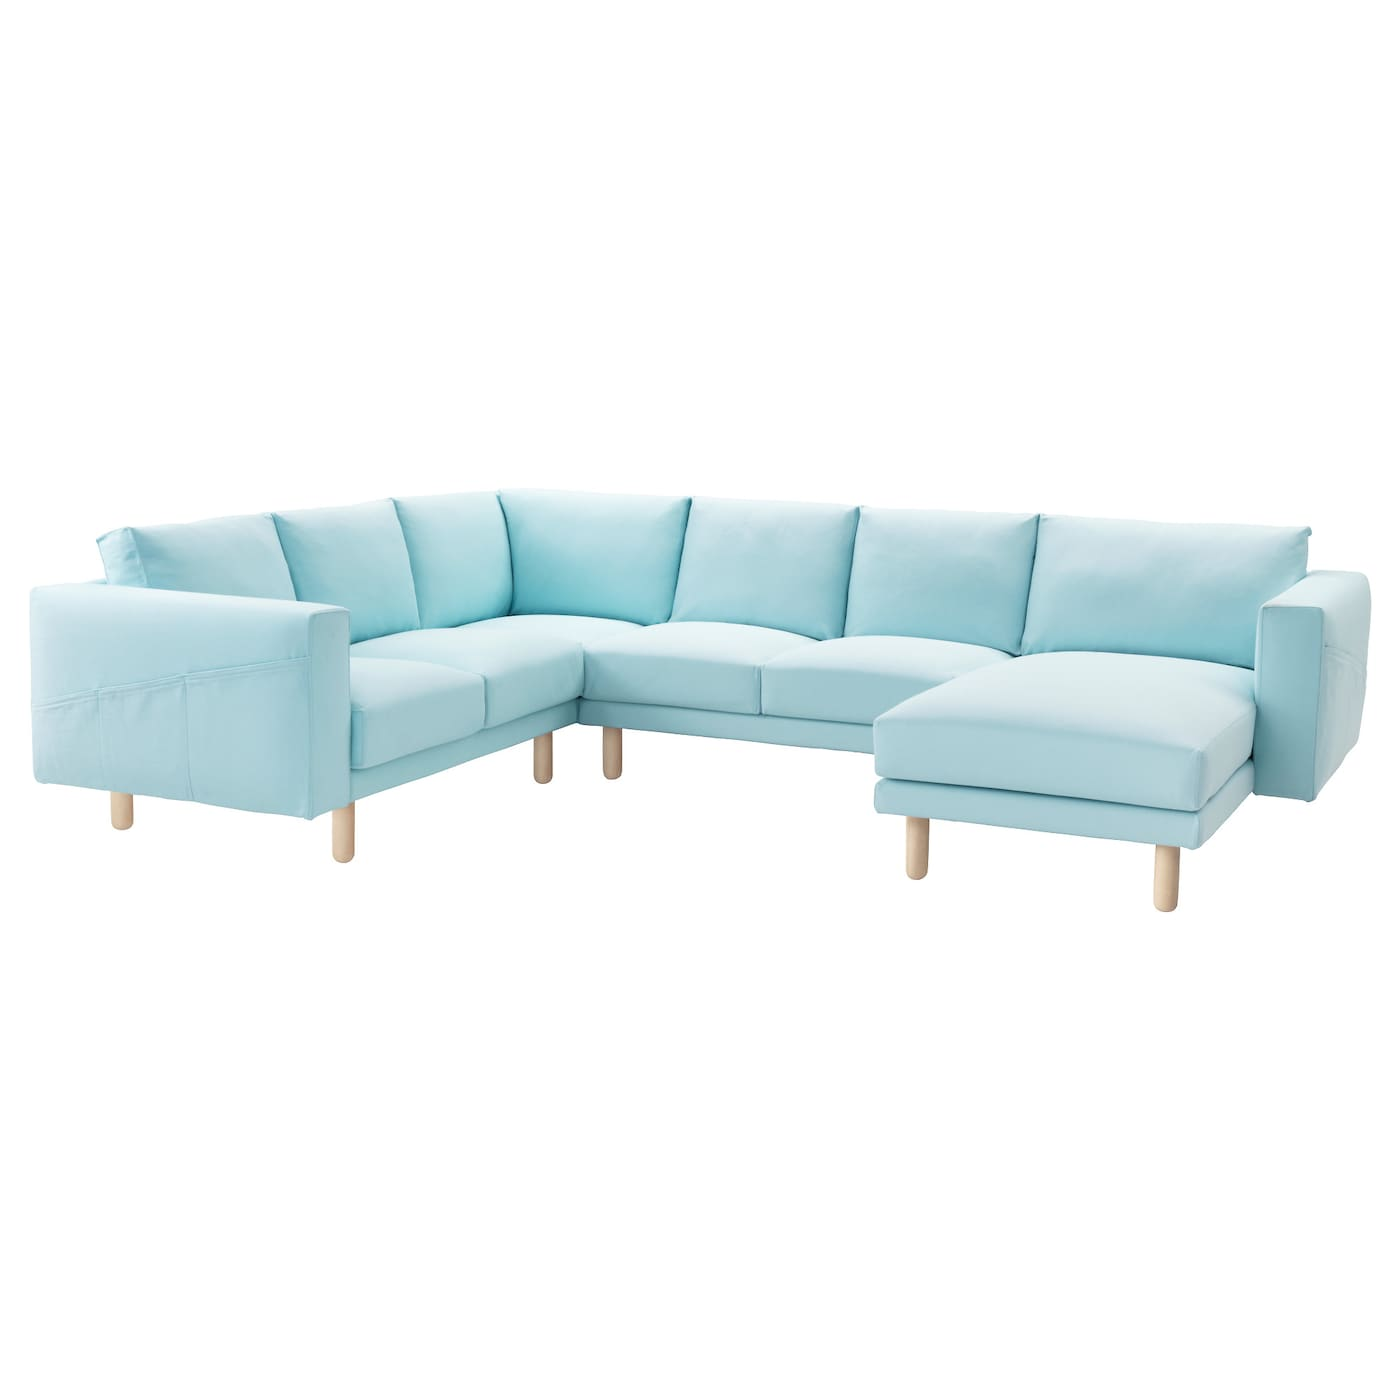 Norsborg corner sofa 2 2 with chaise longue gr sbo light for Ikea corner sofa